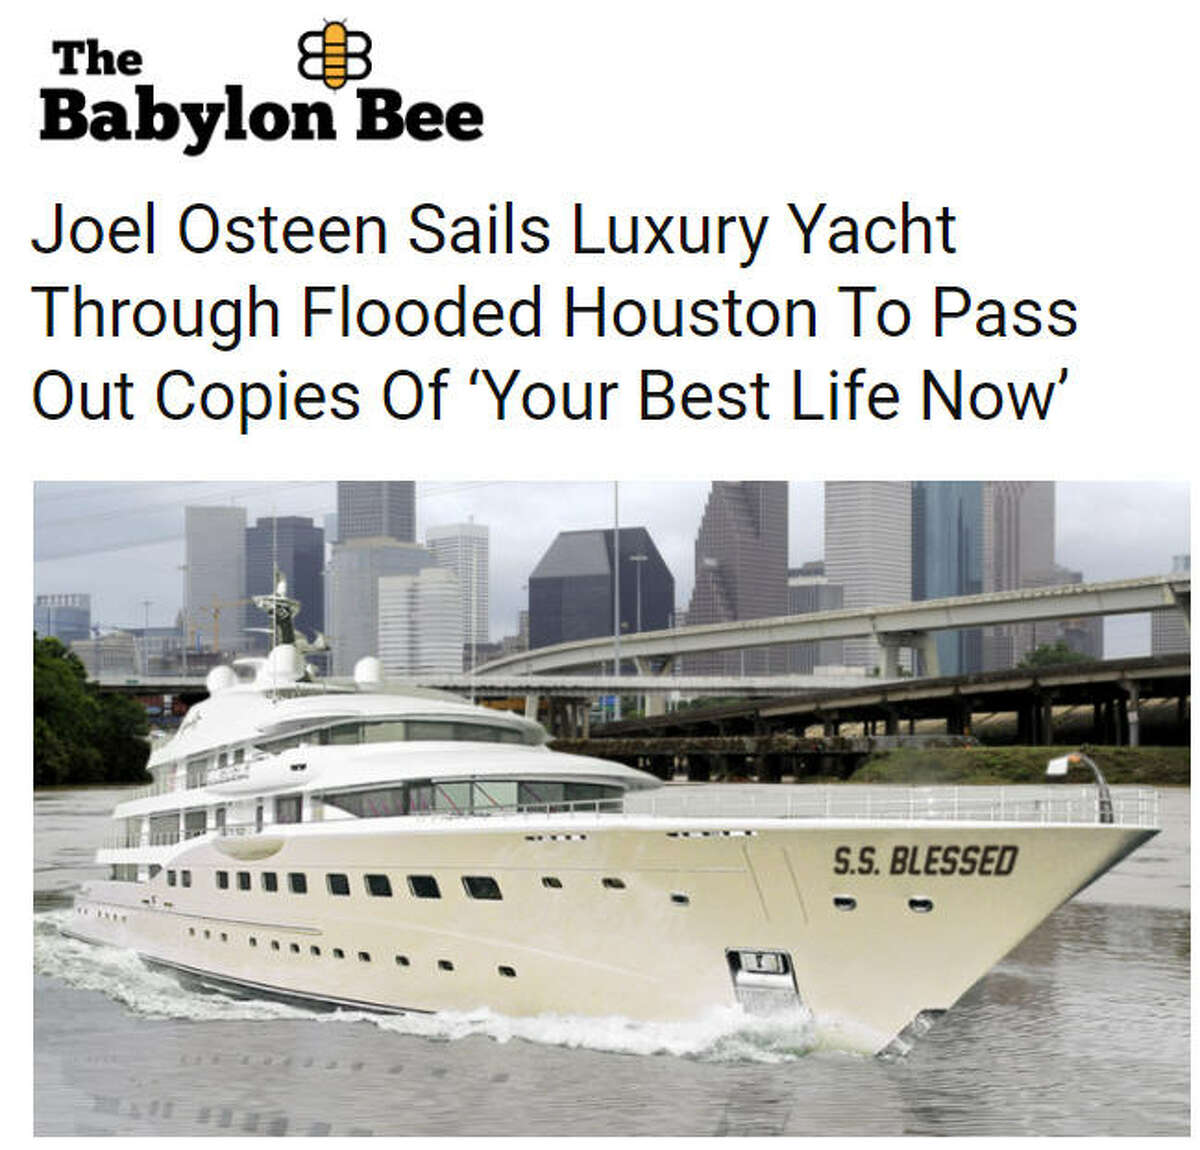 Hoax: Joel Osteen on a yacht A fake news story from the Christian satire site The Babylon Bee